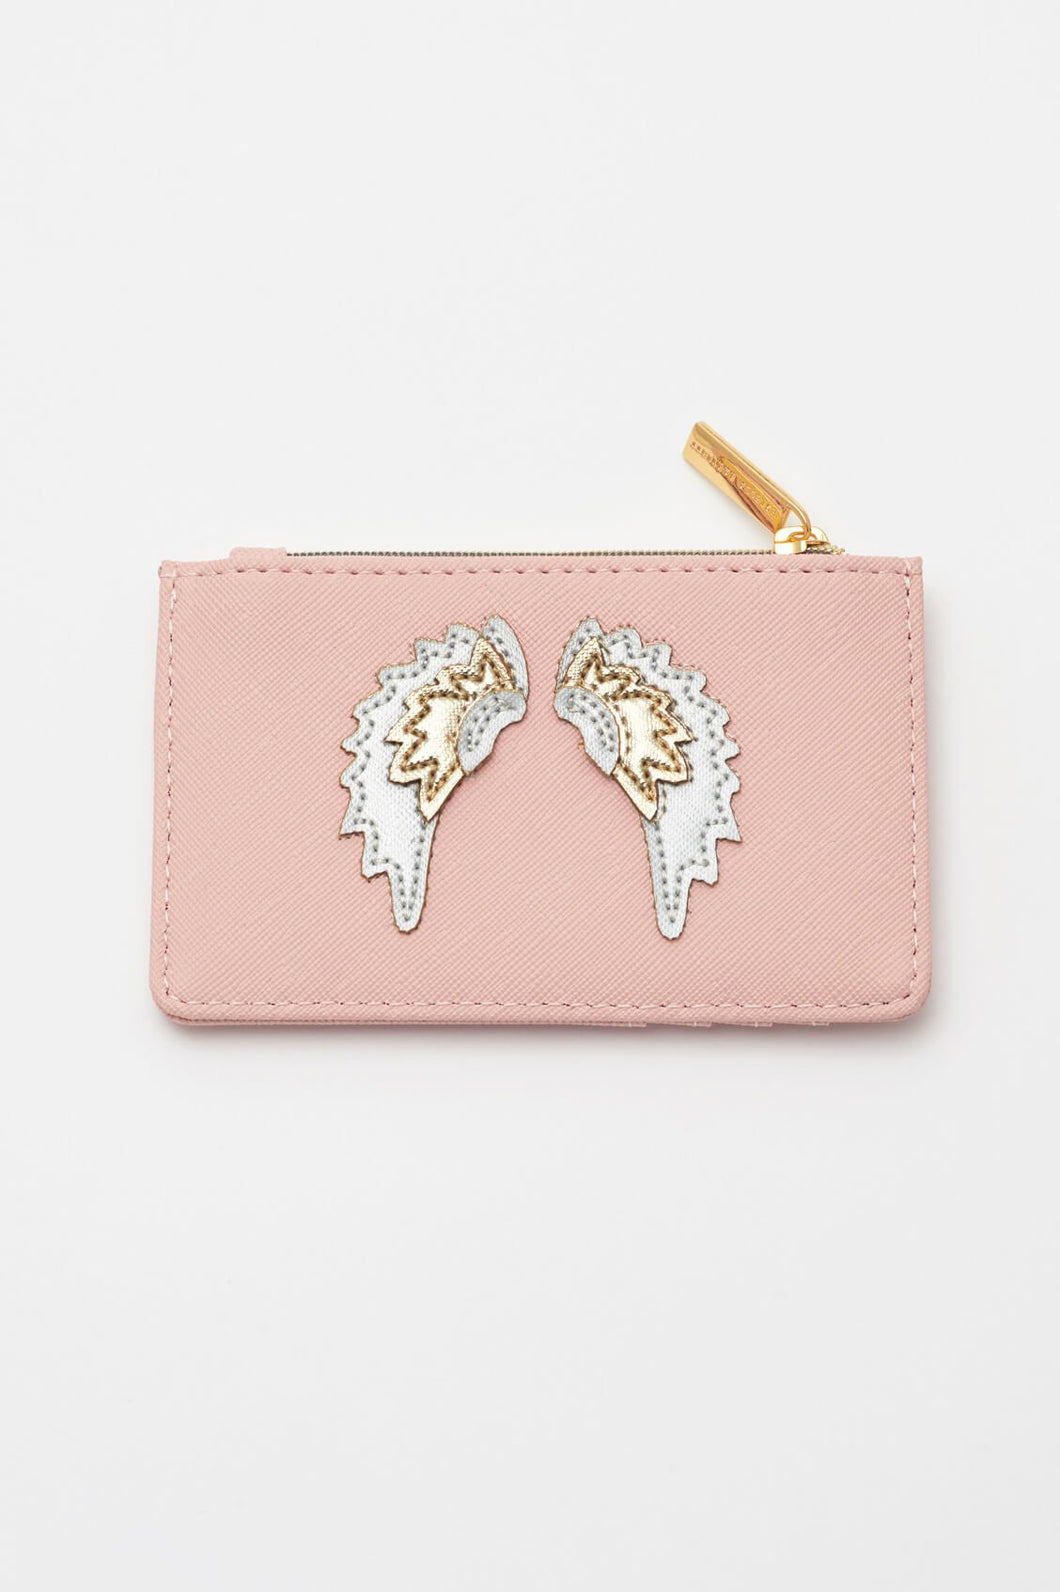 Blush with Iridescent & Gold Wings Applique Card Purse